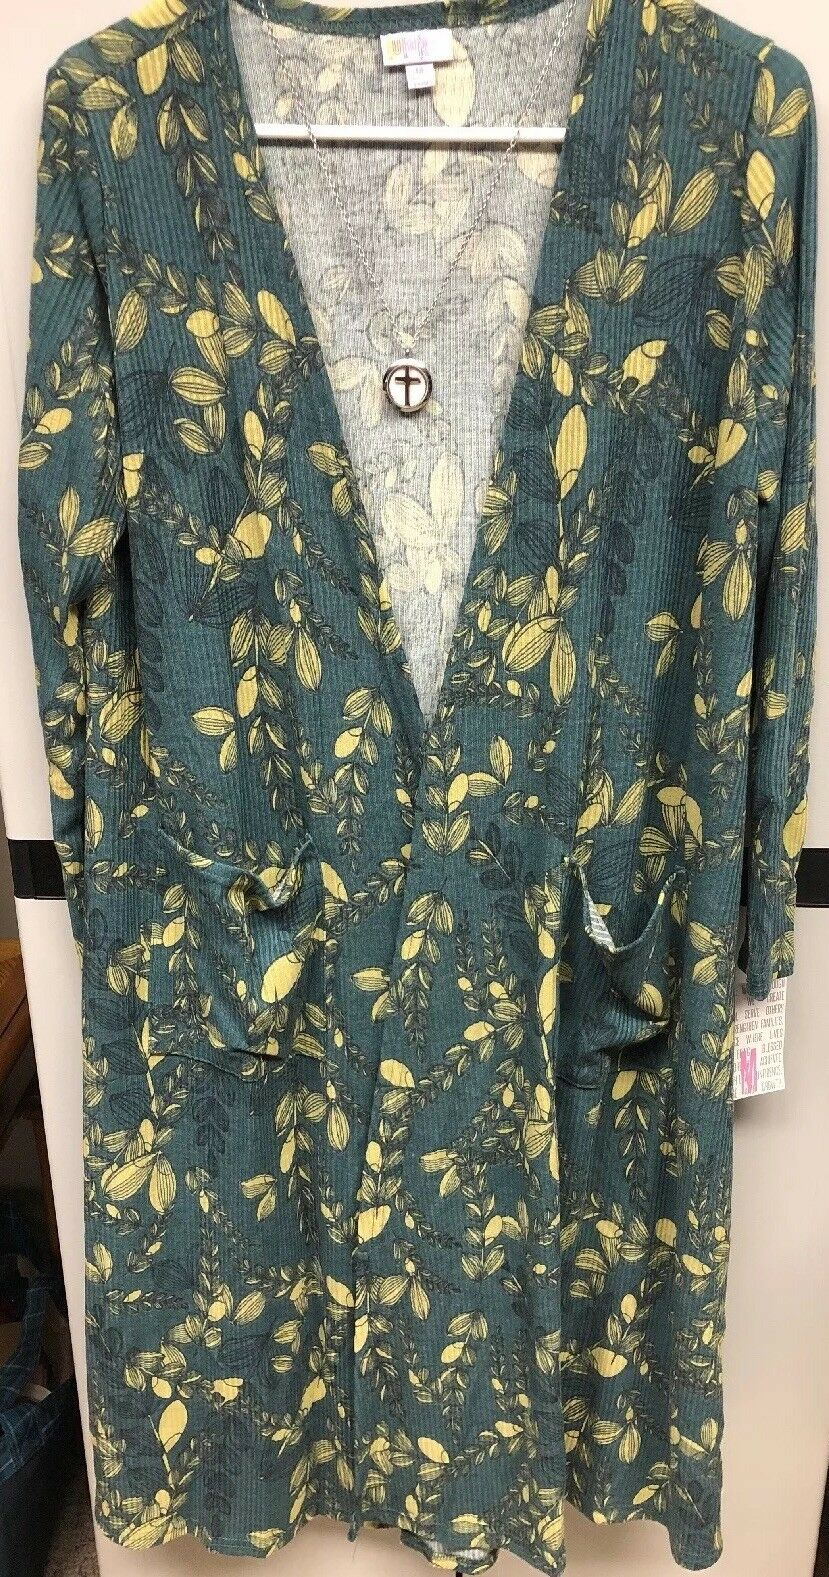 NWT LuLaRoe Medium Sarah Knit Cardigan Duster Green Light Yellow Floral